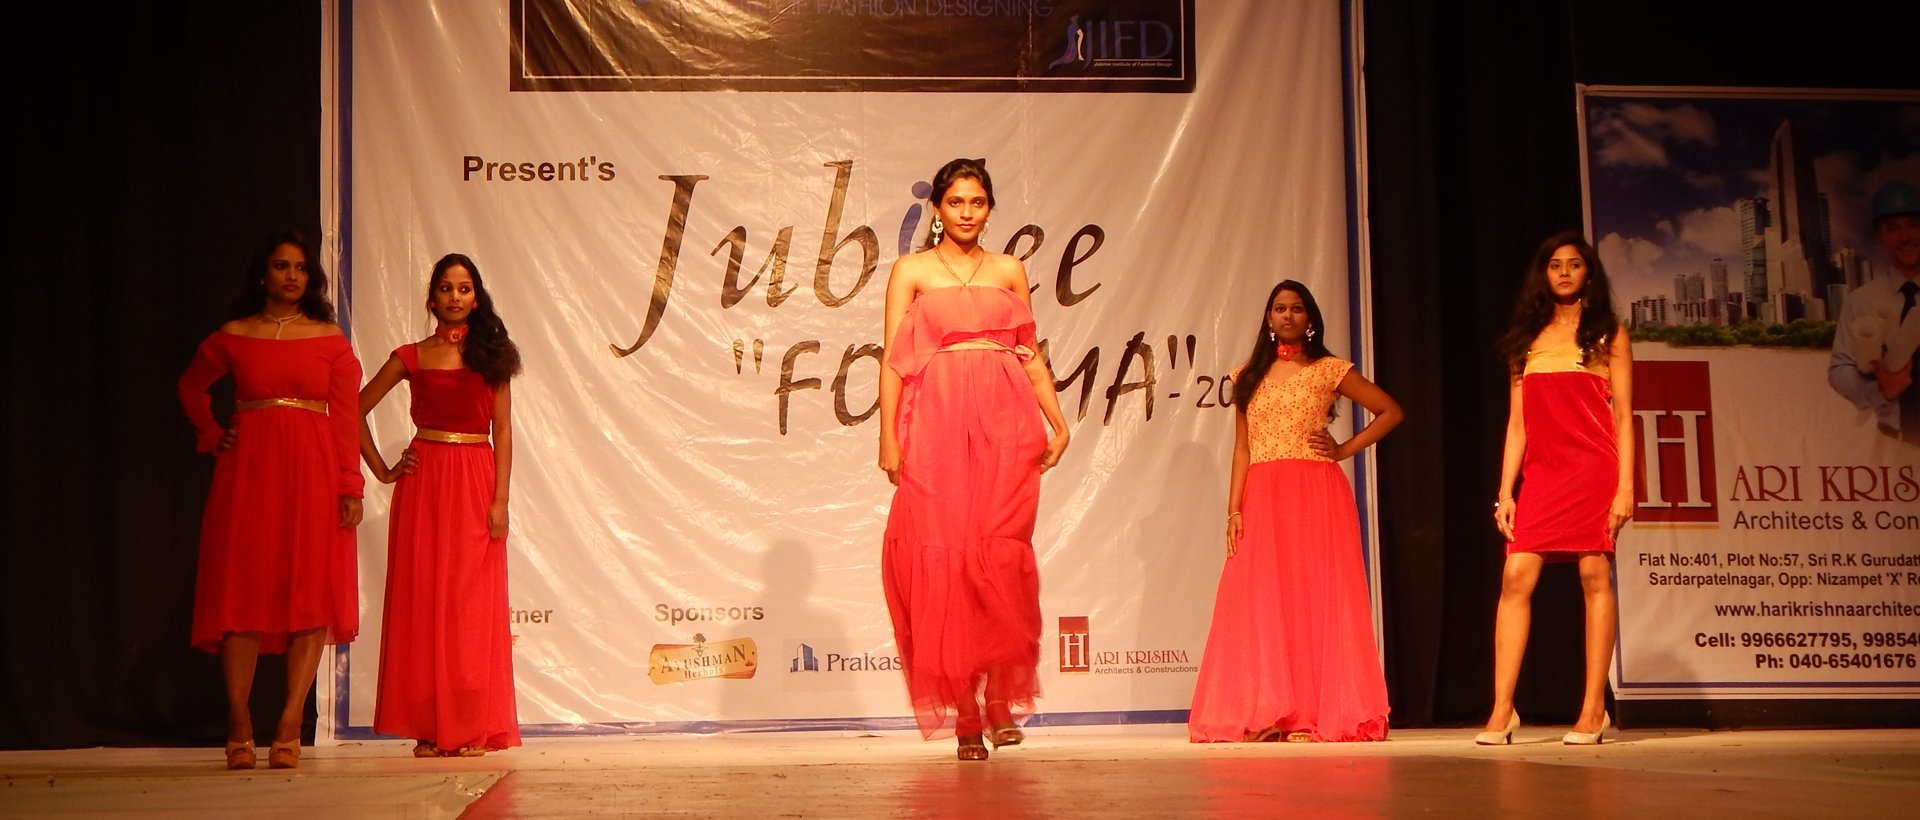 Jubilee Institute Of Fashion Design Kphb Kukatpally Dilsukhnagar Hyderabad India